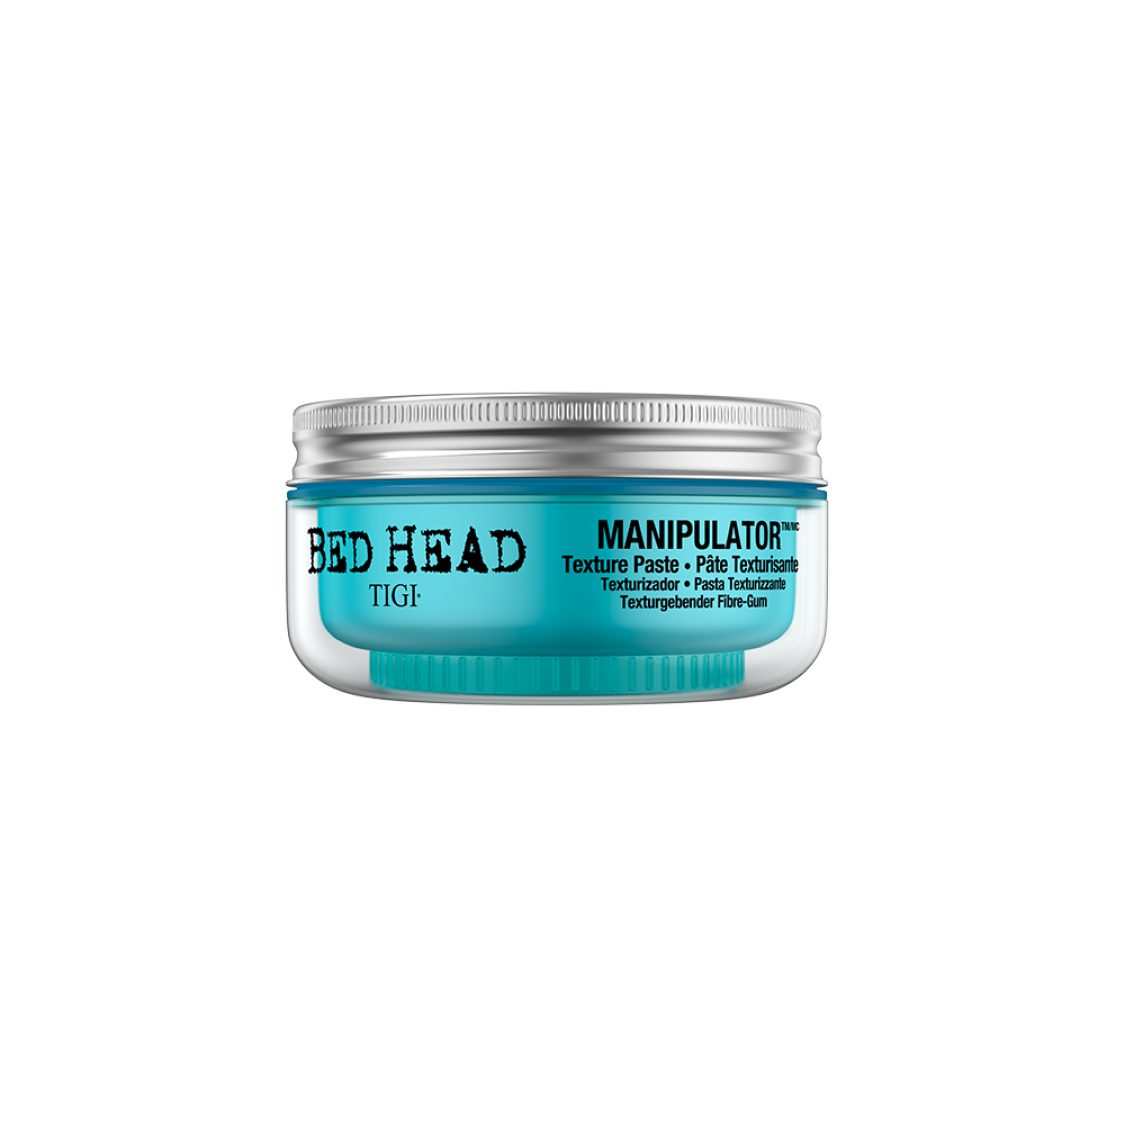 TIGI - Bed Head - Manipulator (Blue) 50ml